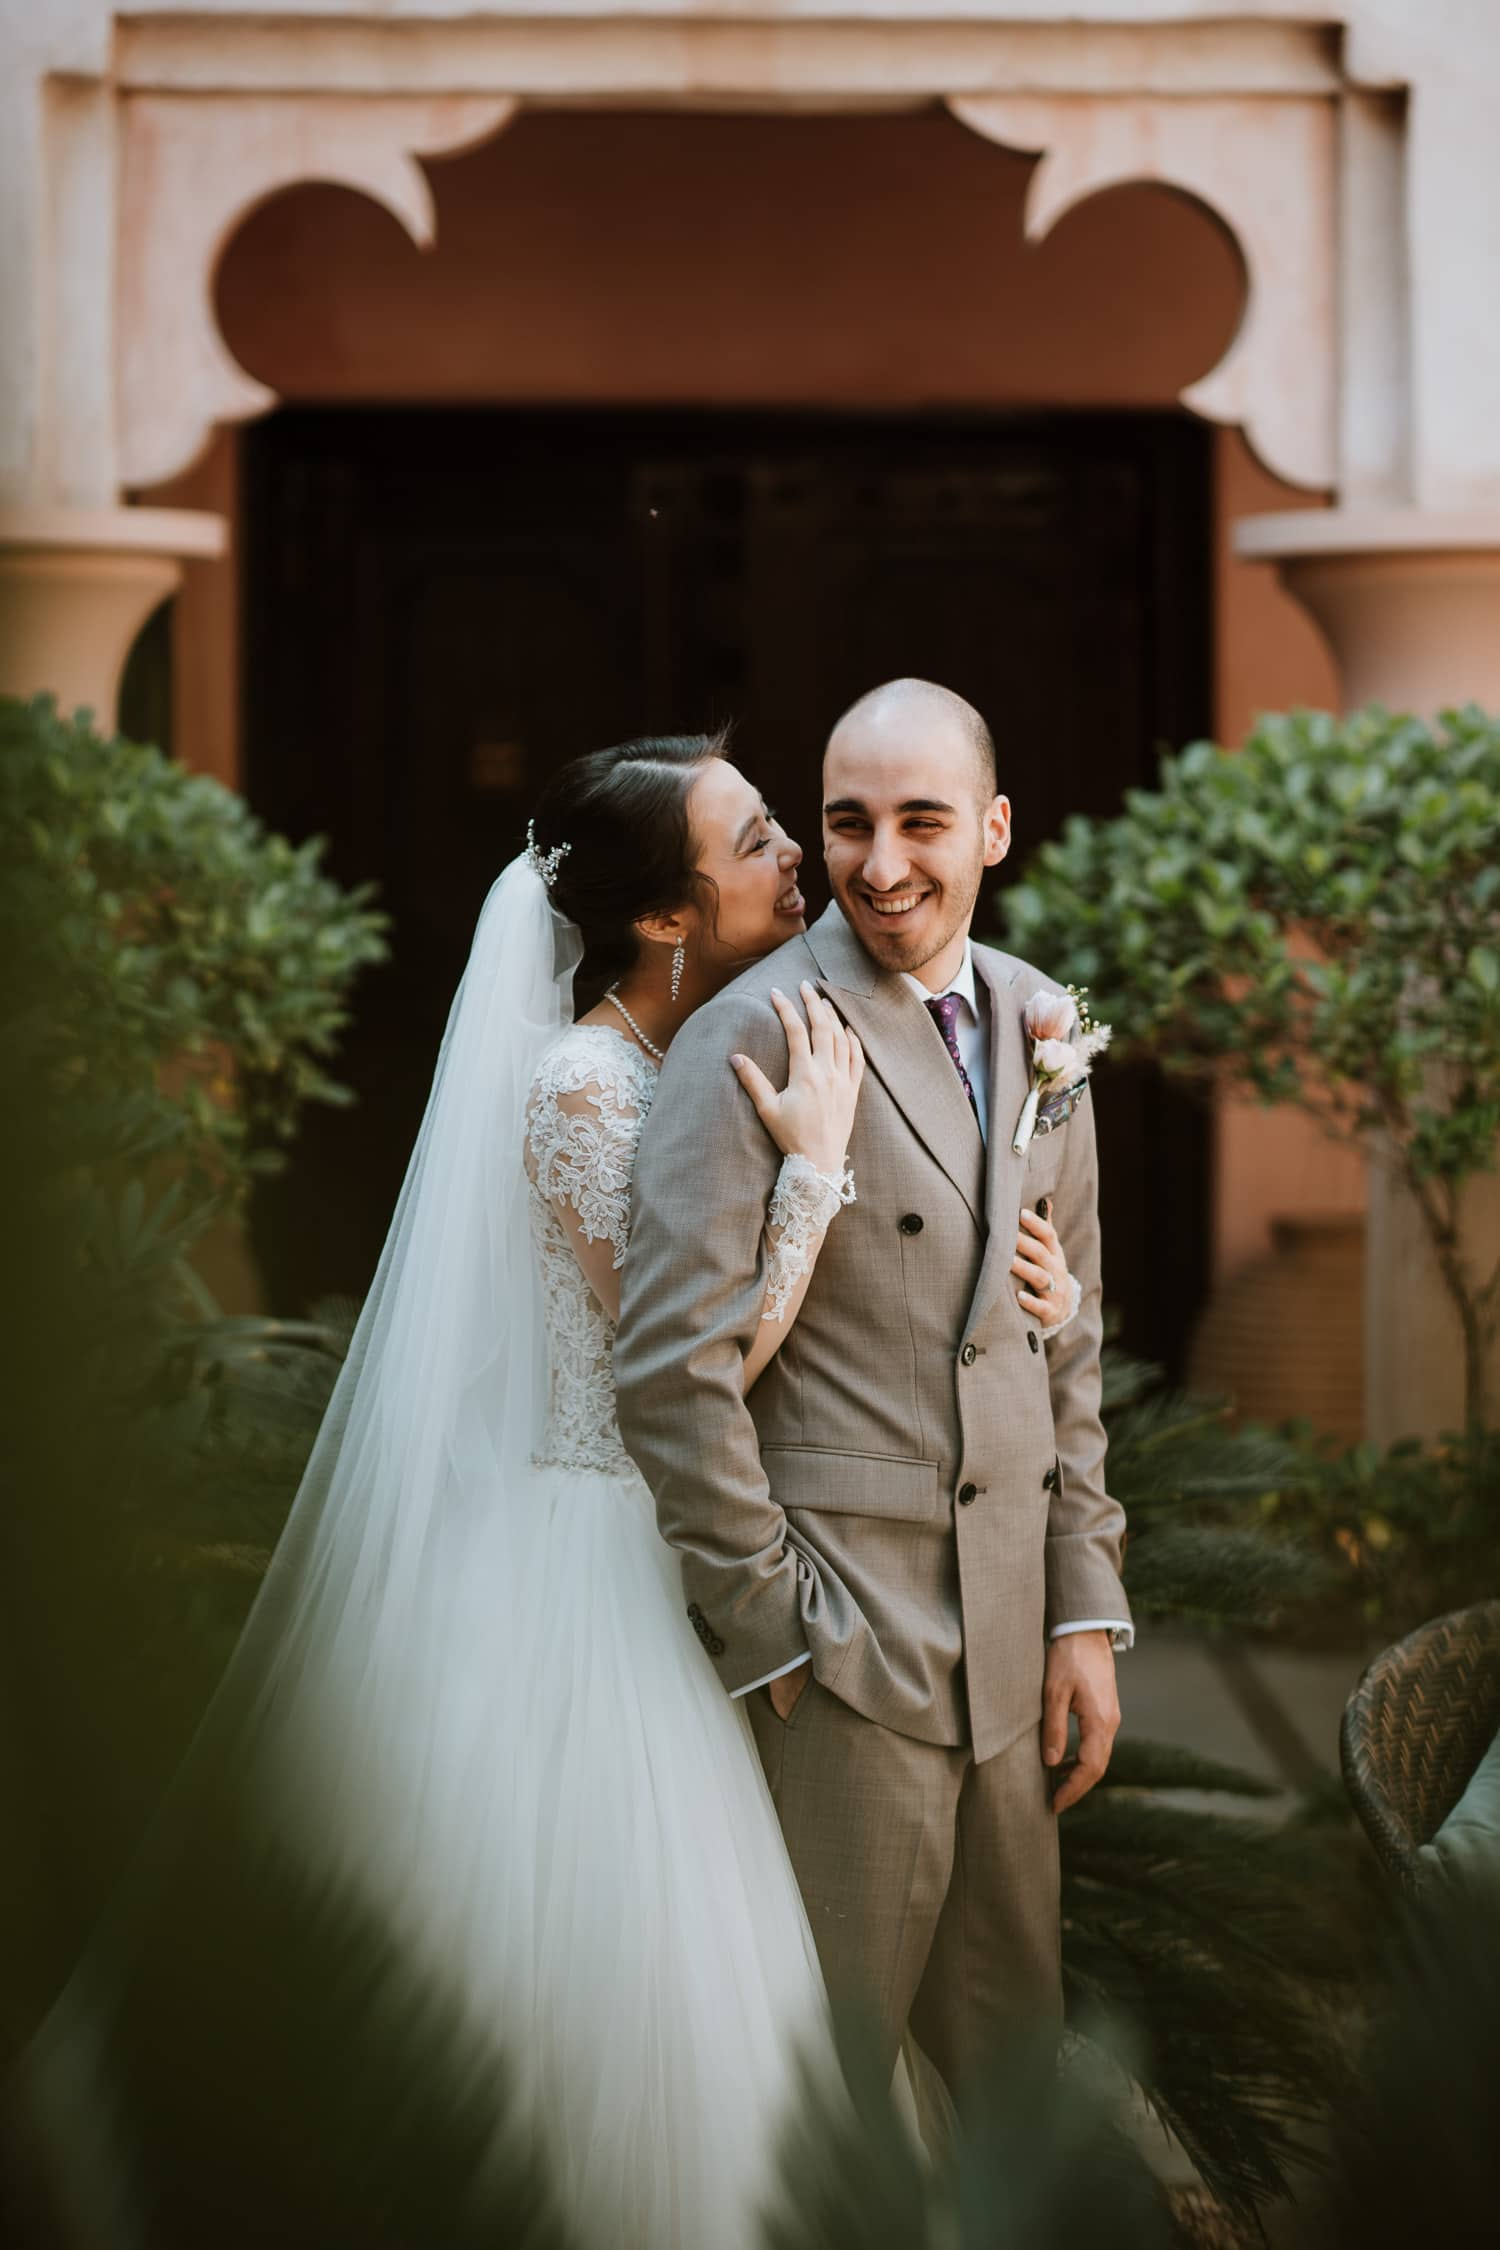 Whimsical Wedding Courtyard Jumeirah Al Qasr Dubai